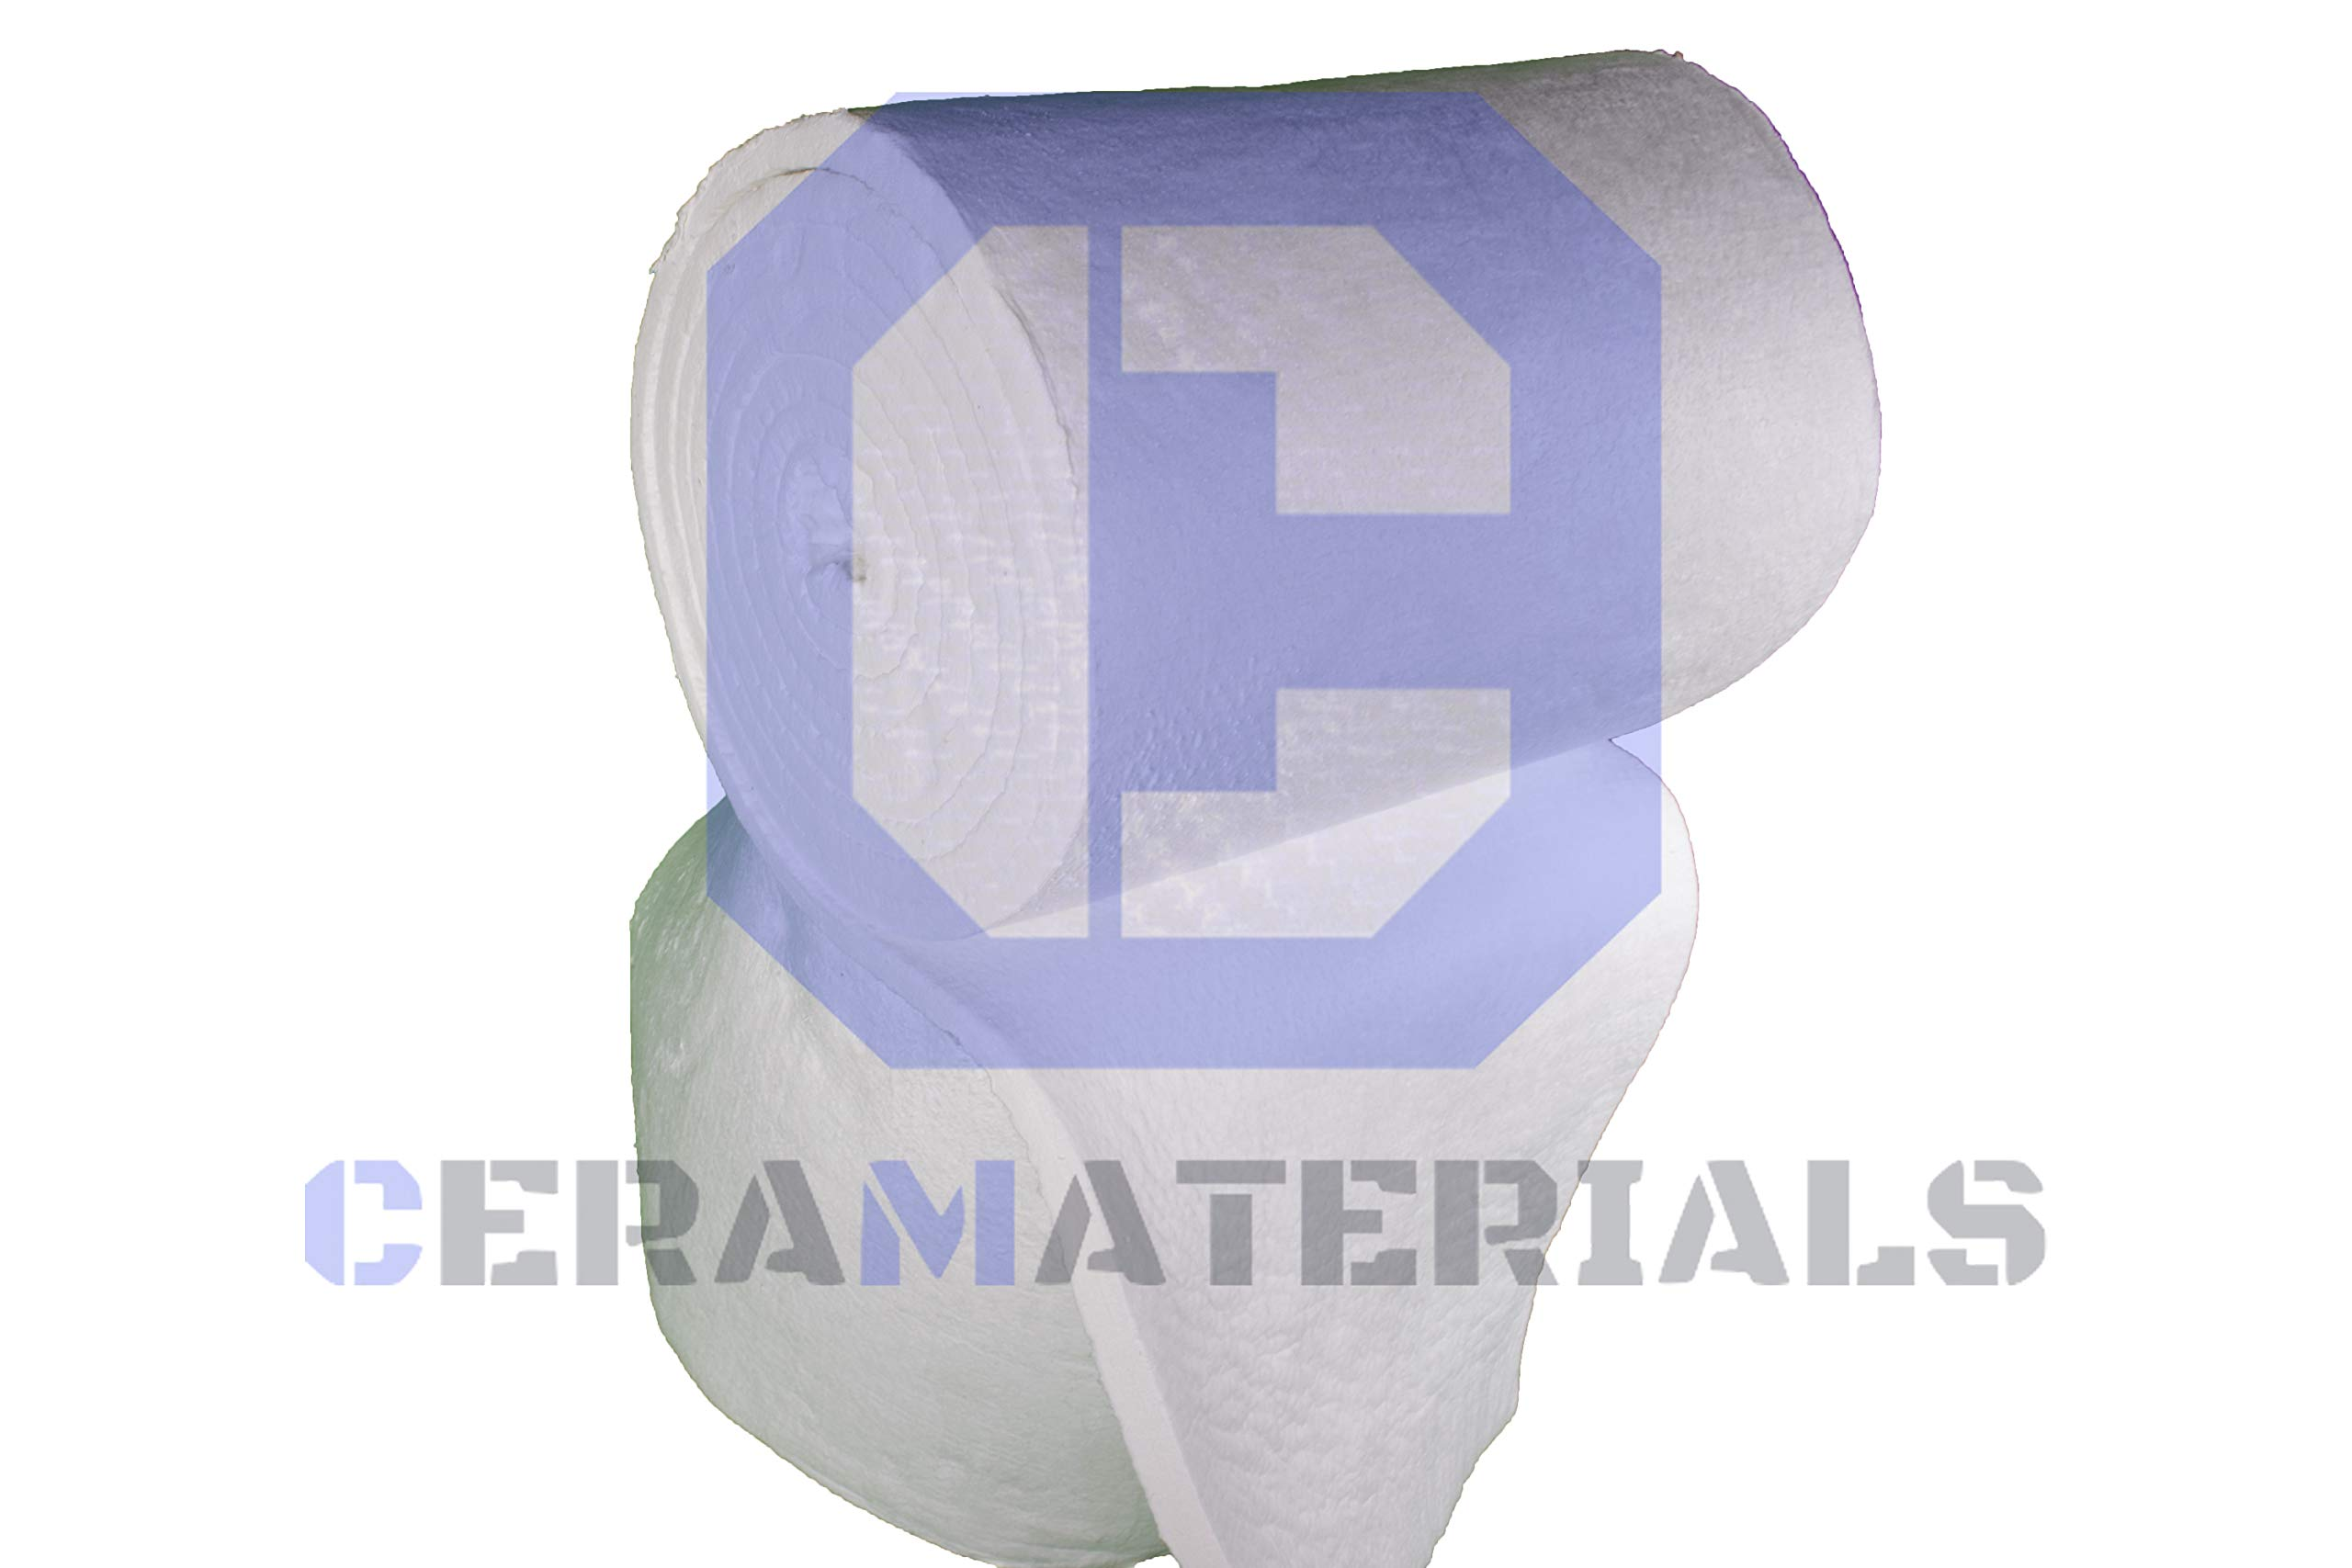 Ceramic Fiber Insulation Blanket 8# lb Density (2'' x 24'' x 3') for Thermal Insulation in Stoves, Fireplaces, Ovens, Kilns, Forges, Furnace and More by CeraMaterials